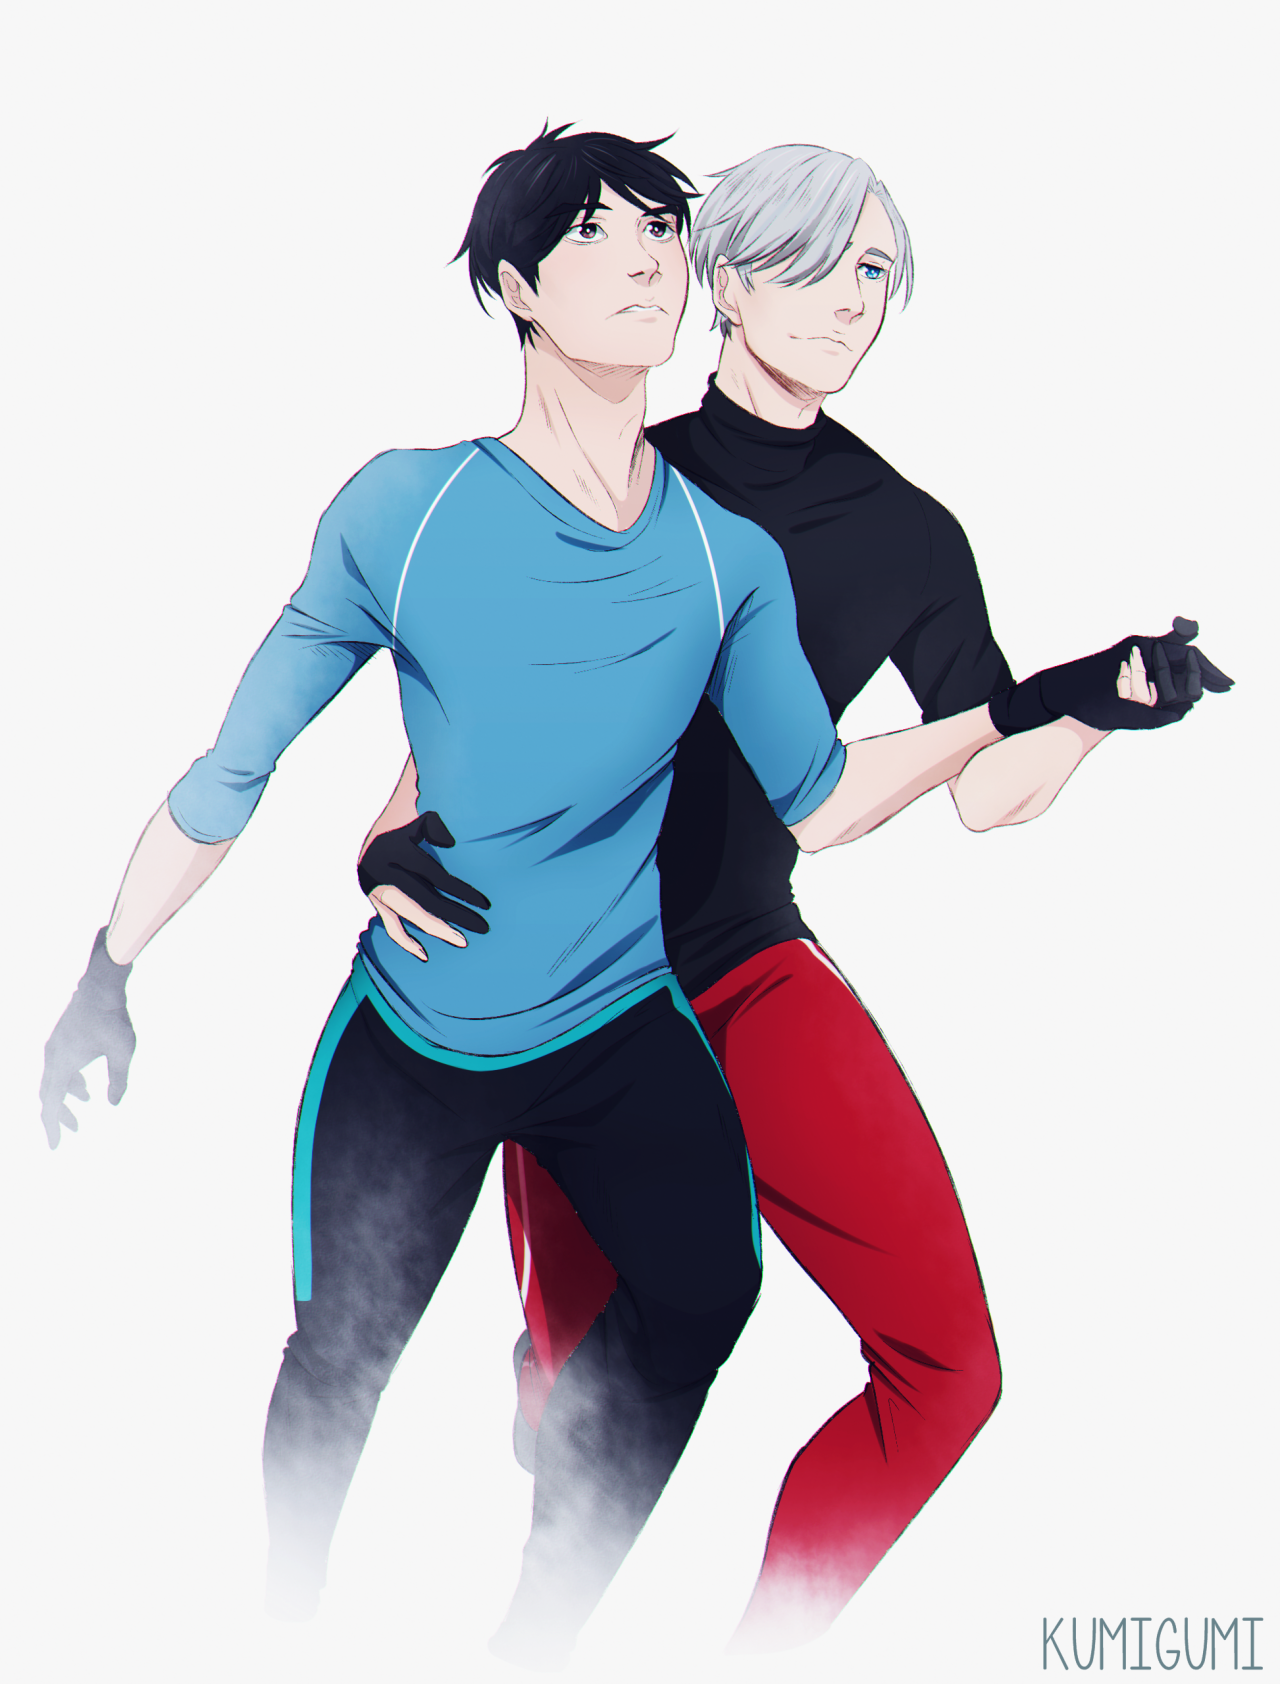 Wanted to draw Yuri and Victor dancing together https